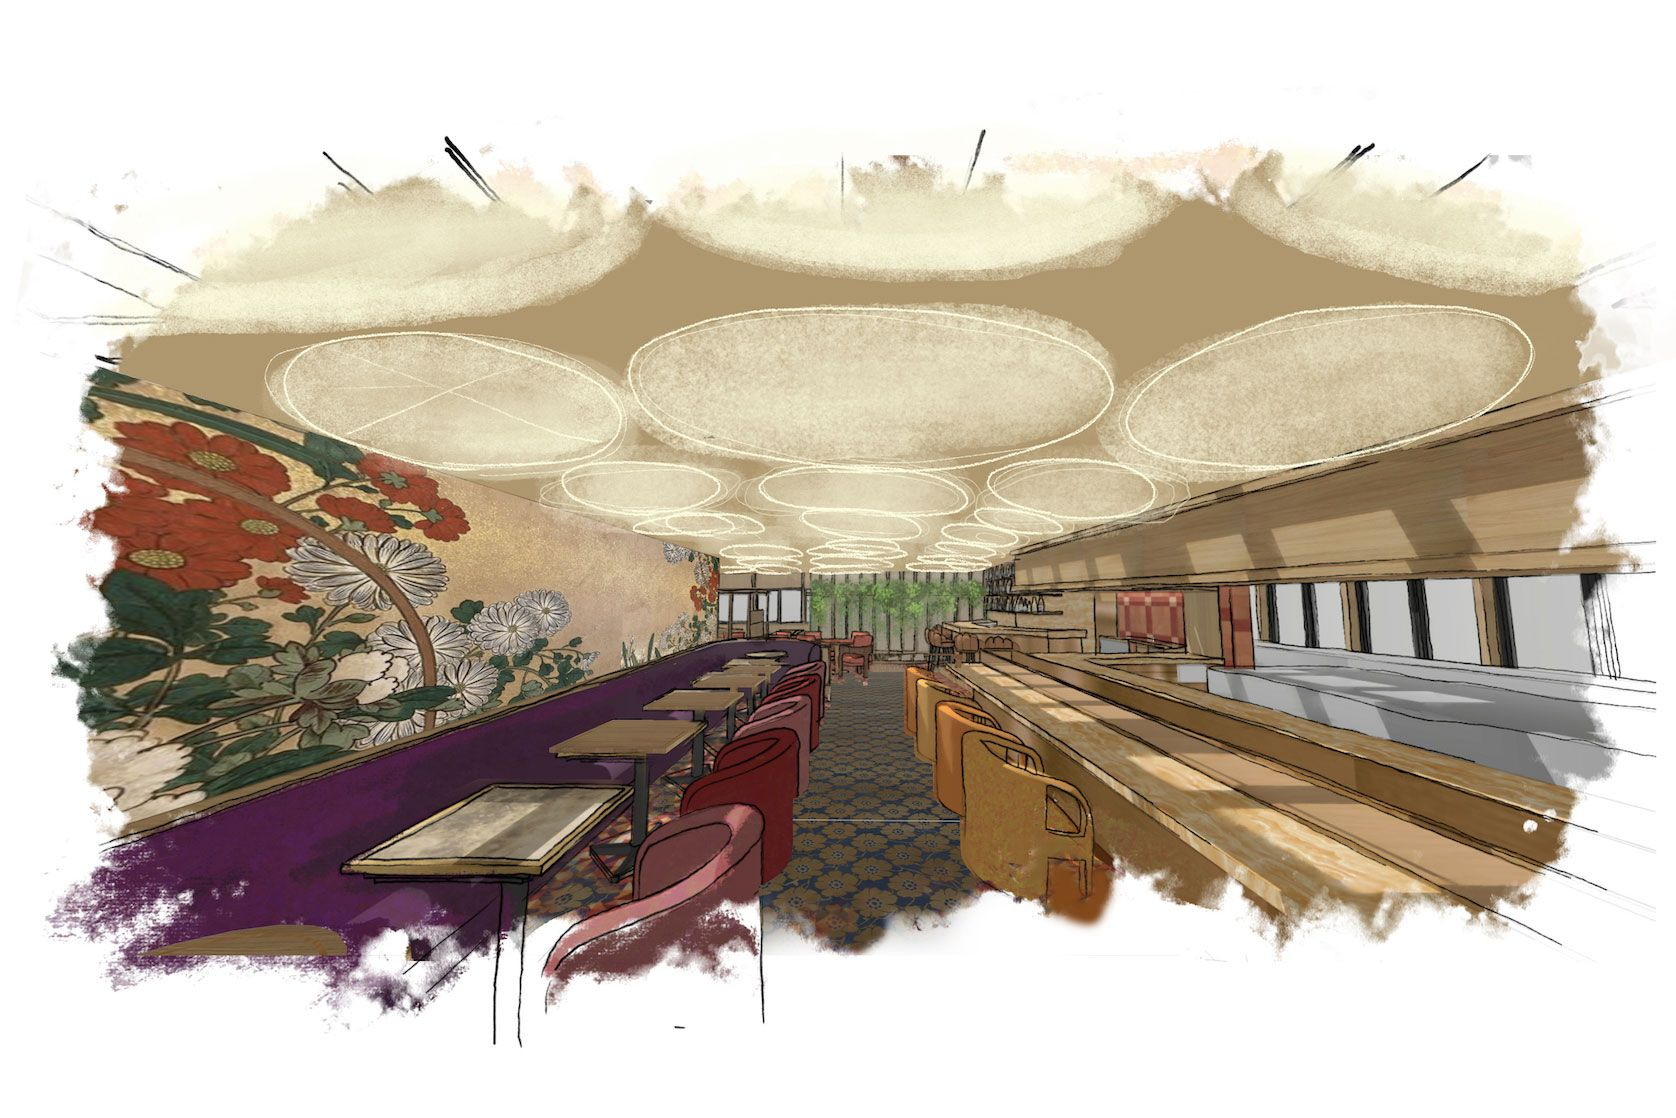 Pirata Group To Open 6 New Restaurants Later This Year